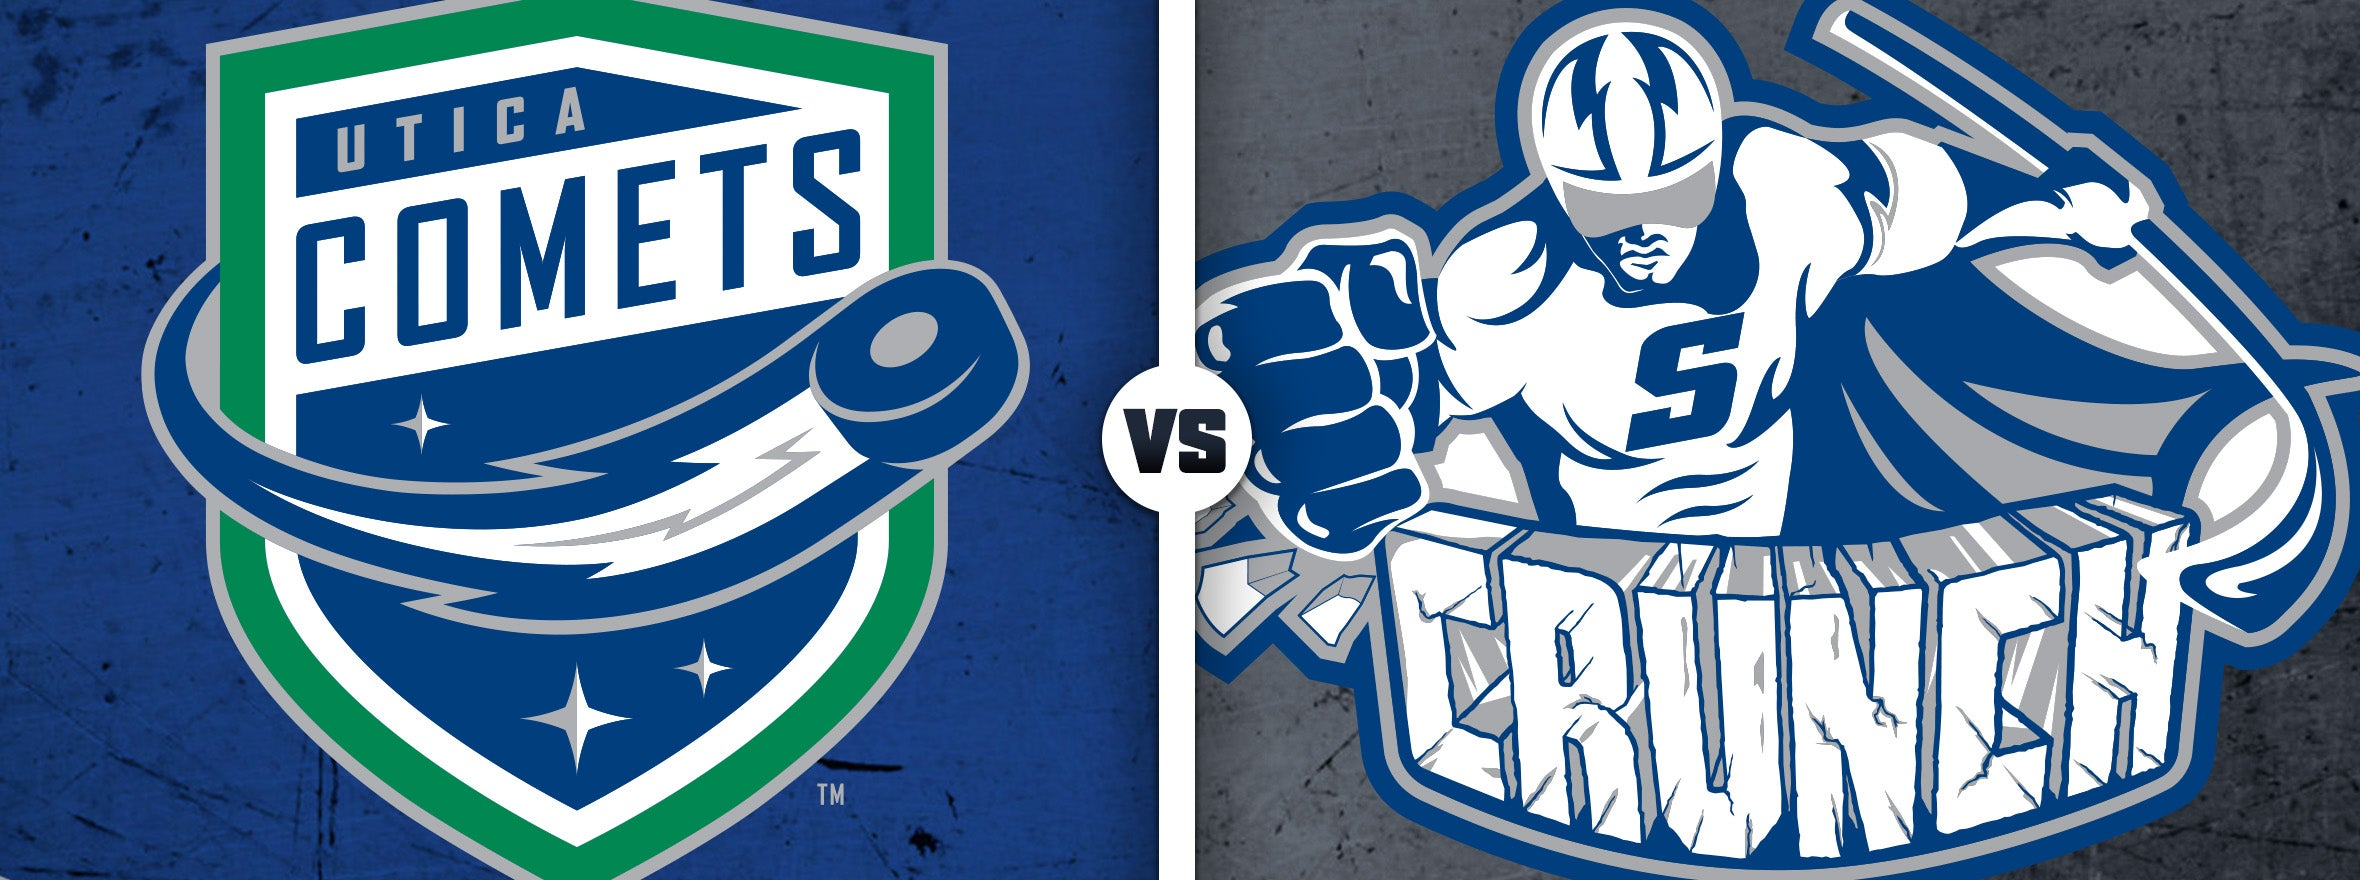 COMETS WRAP UP SEASON SERIES WITH CRUNCH TONIGHT